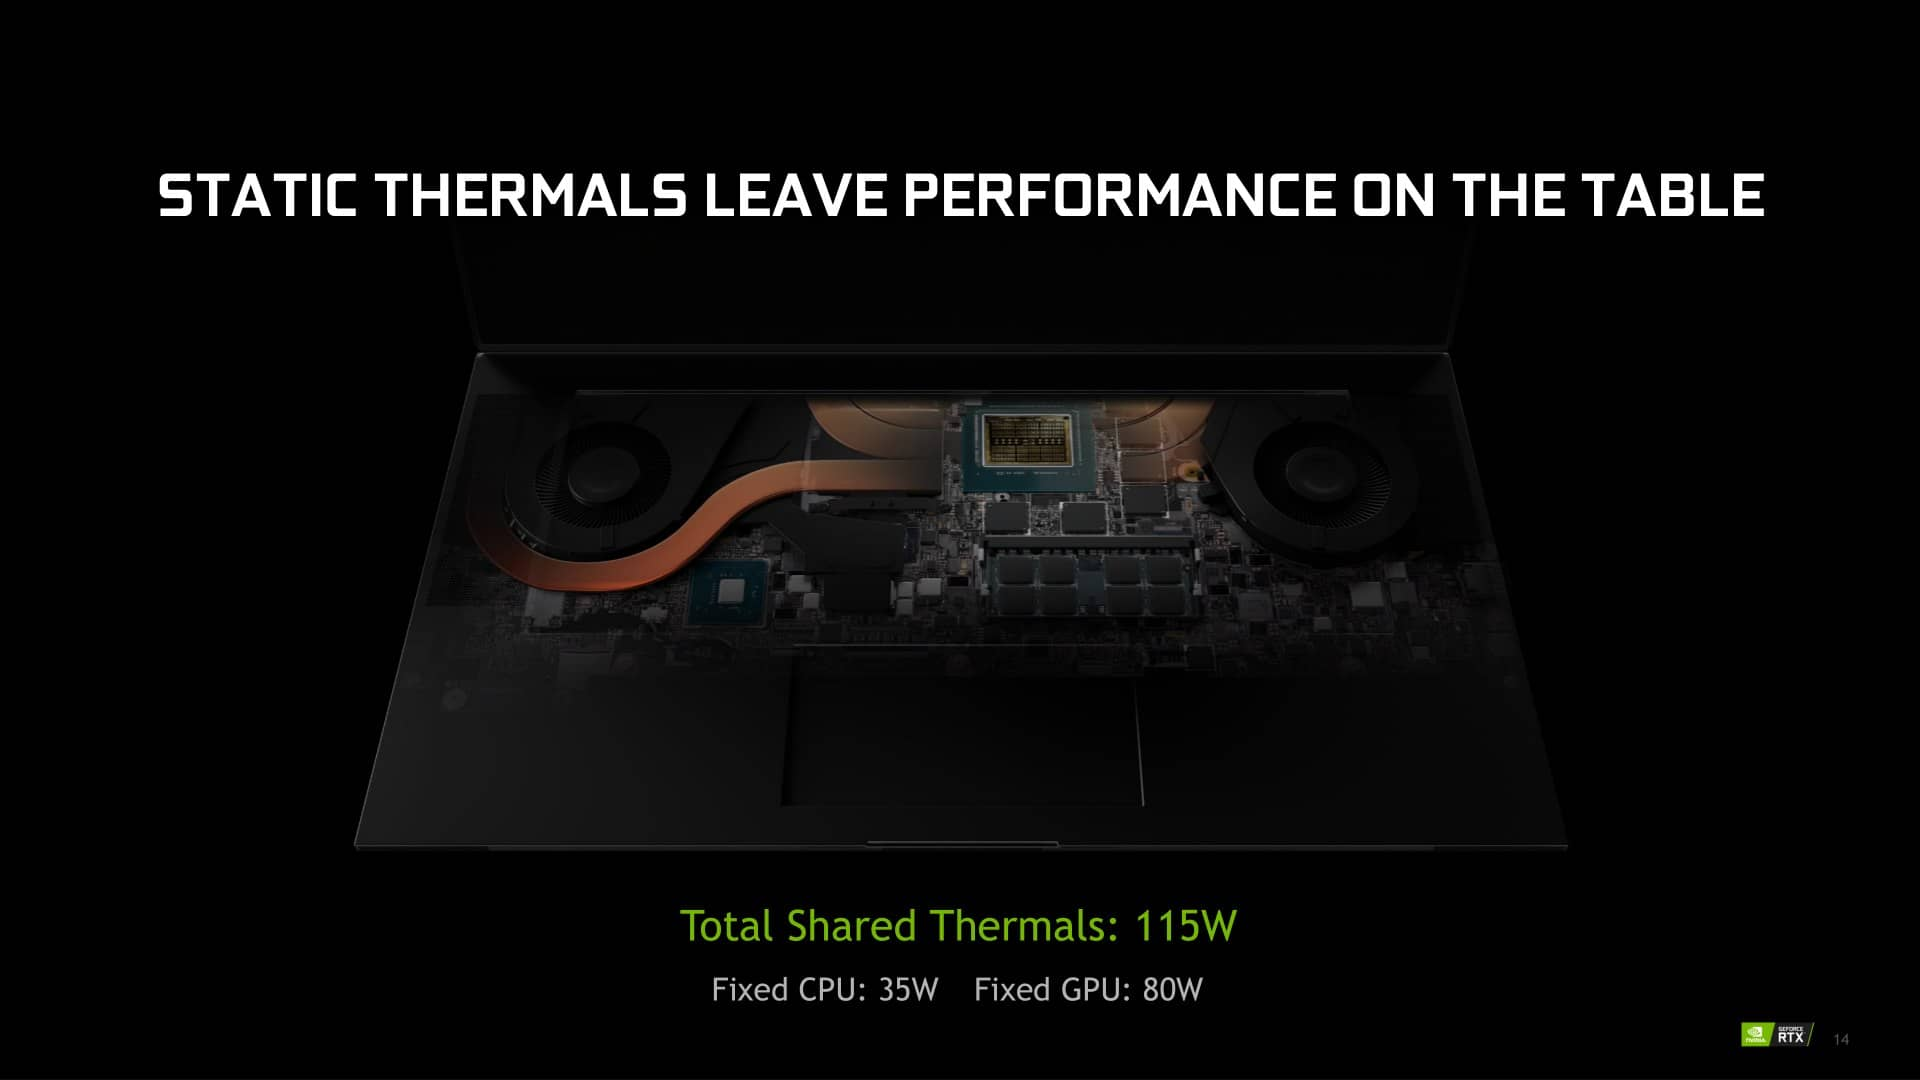 Nvidia Max Q 2020 notebooky s GeForce RTX prezentace 09